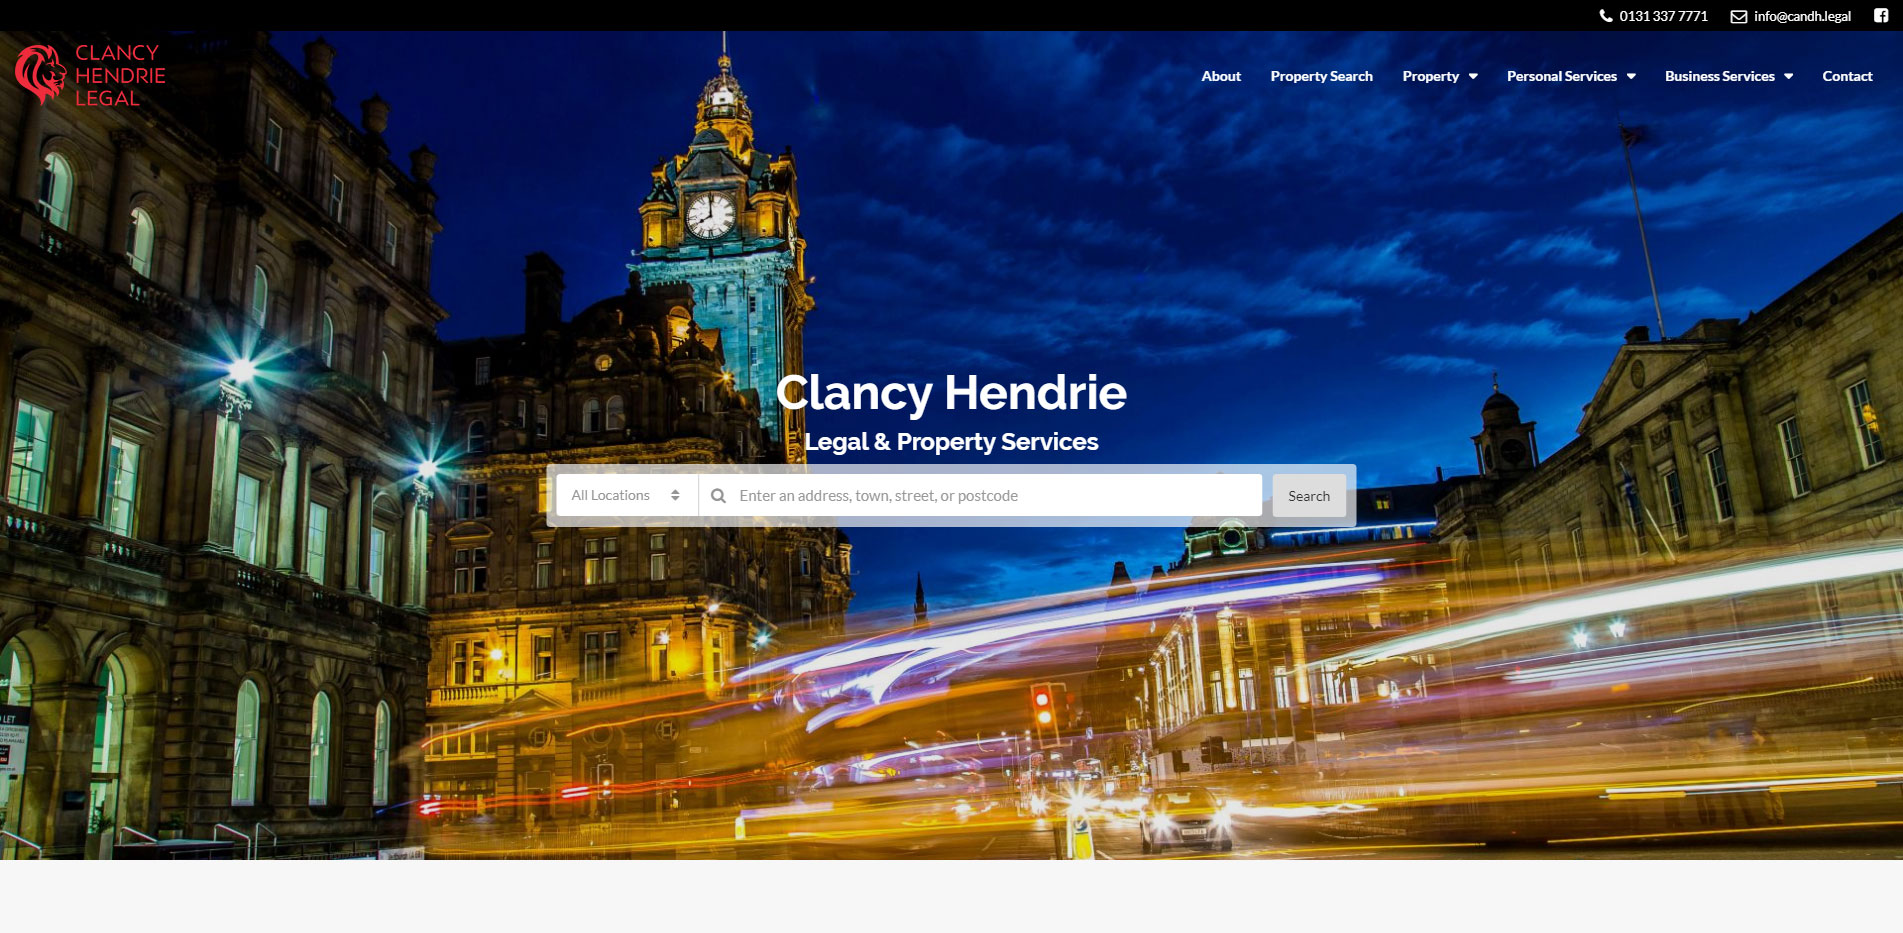 Clancy Hendrie Legal About